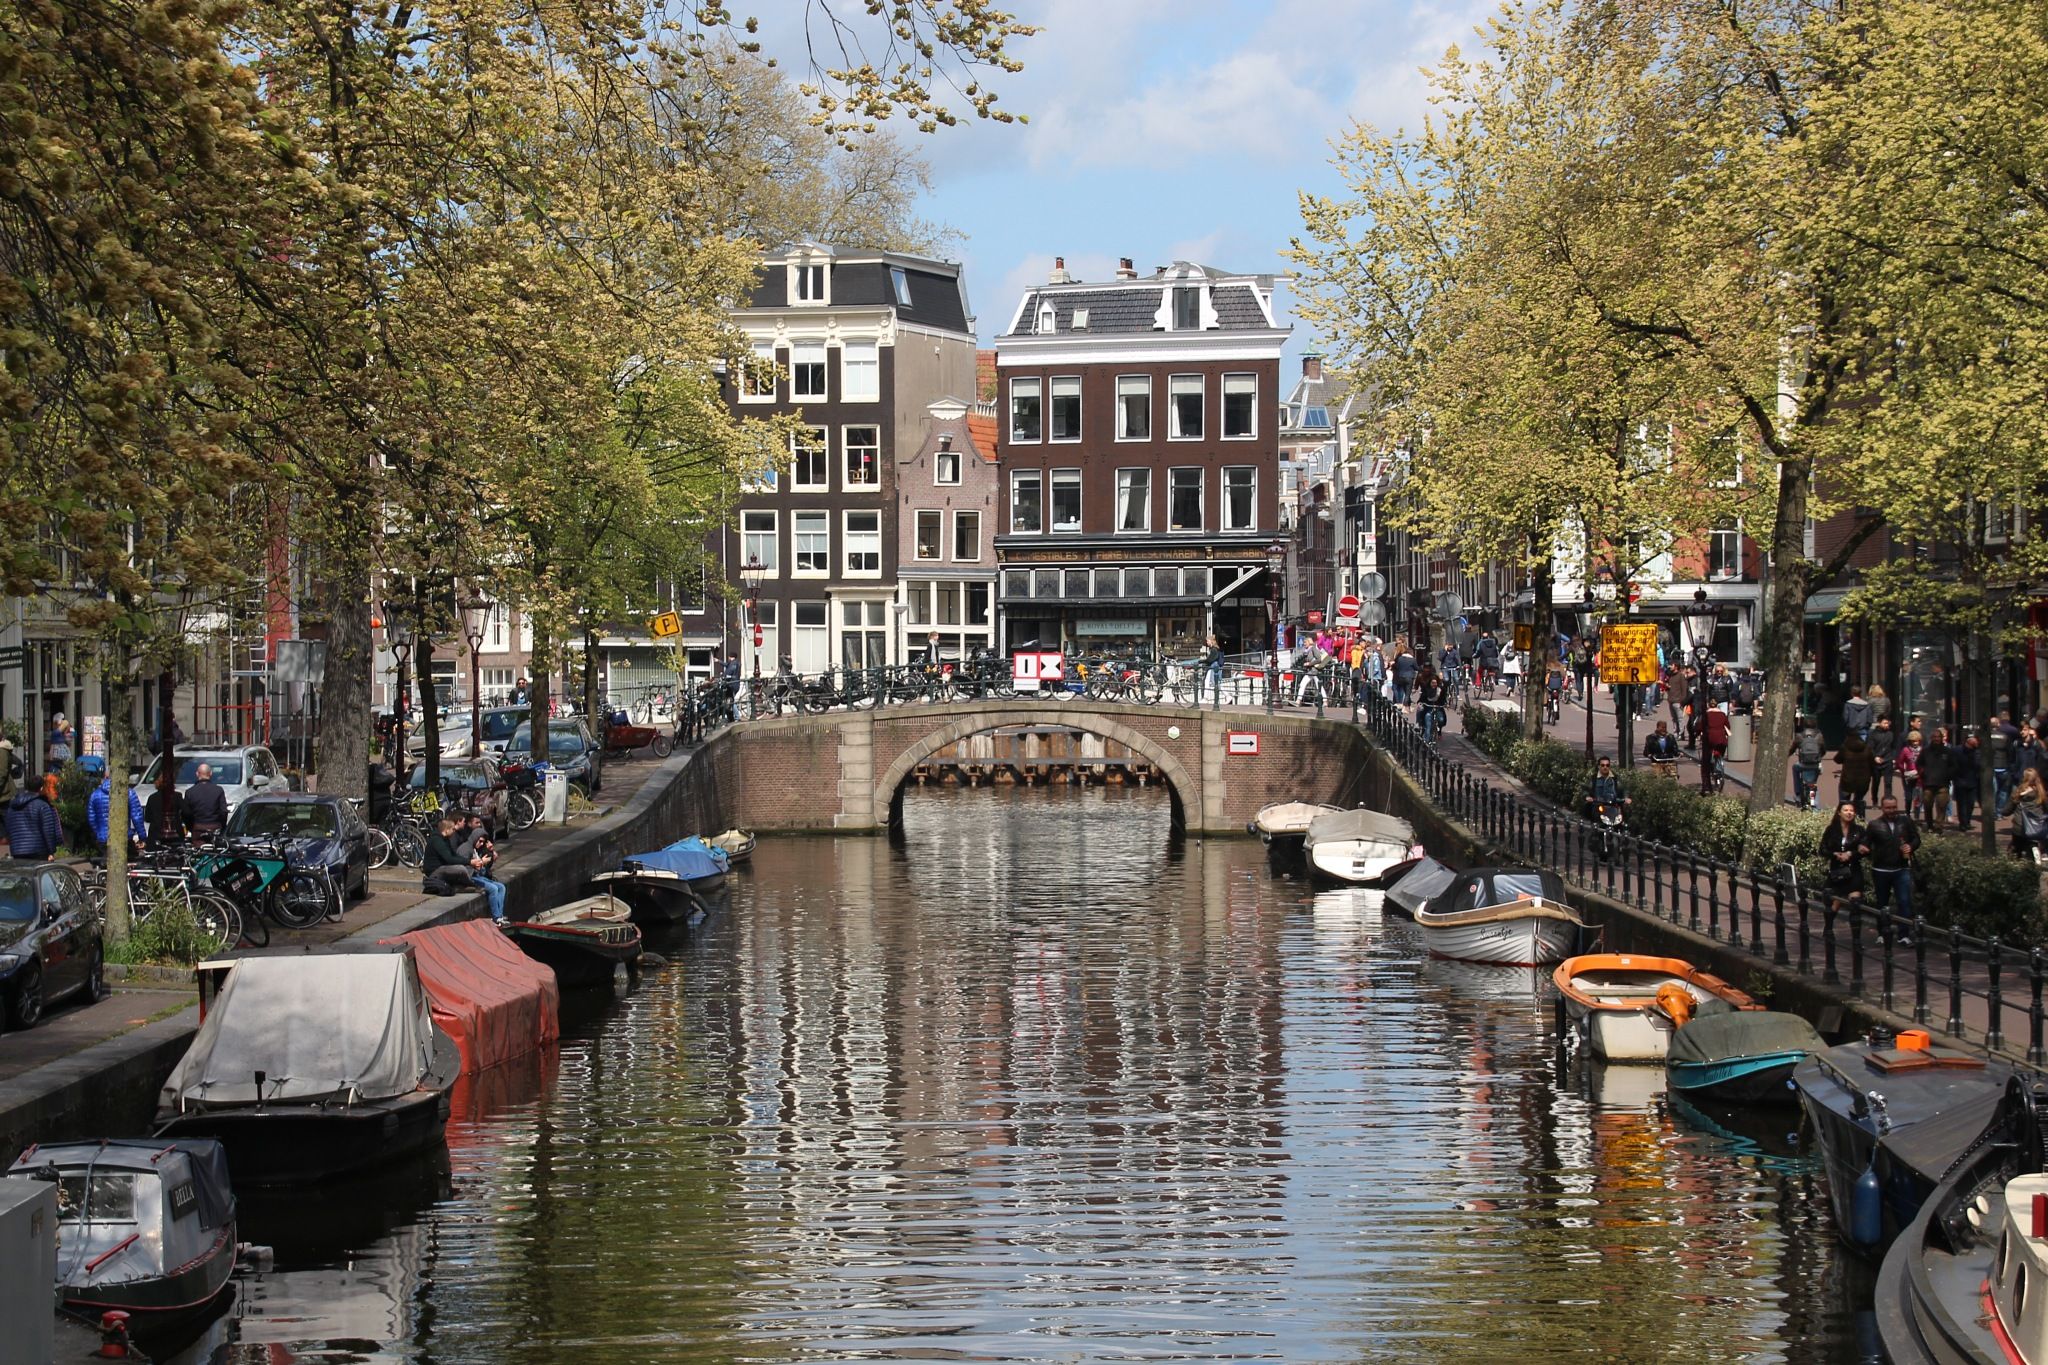 Gracht in Amsterdam  by Norbert Pohl